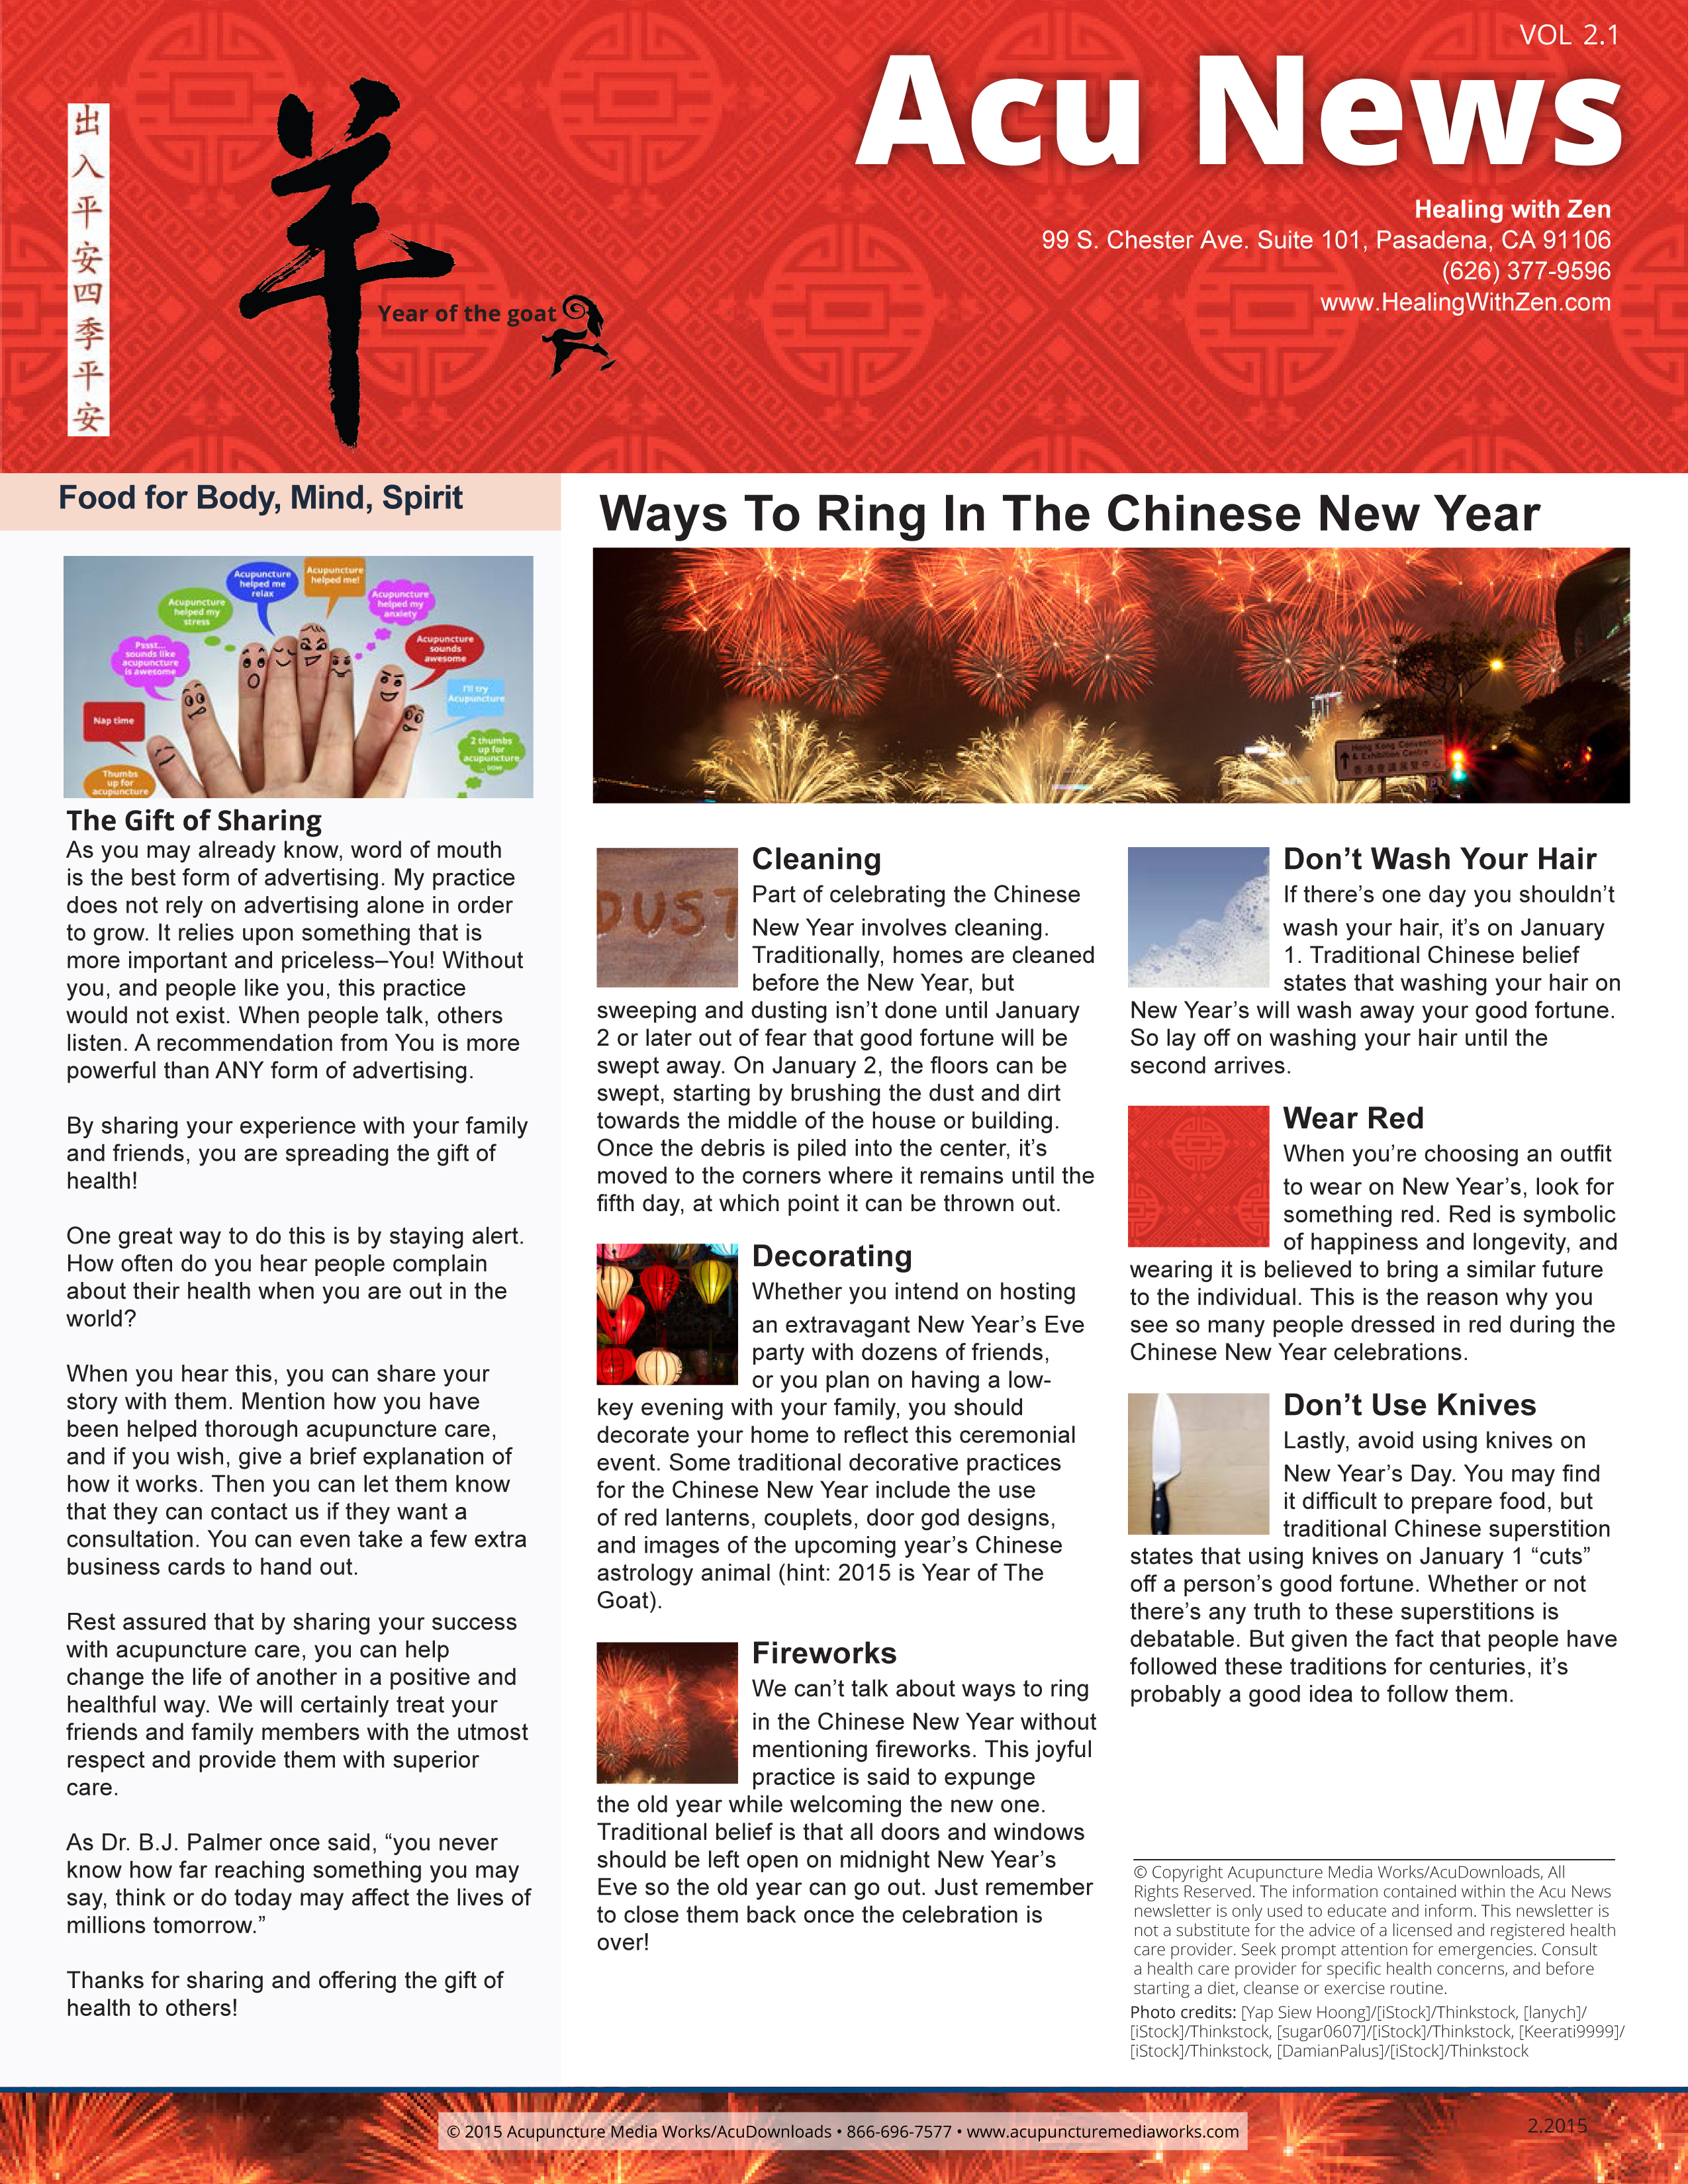 Ways To Ring In The Chinese New Year - Healing with Zen